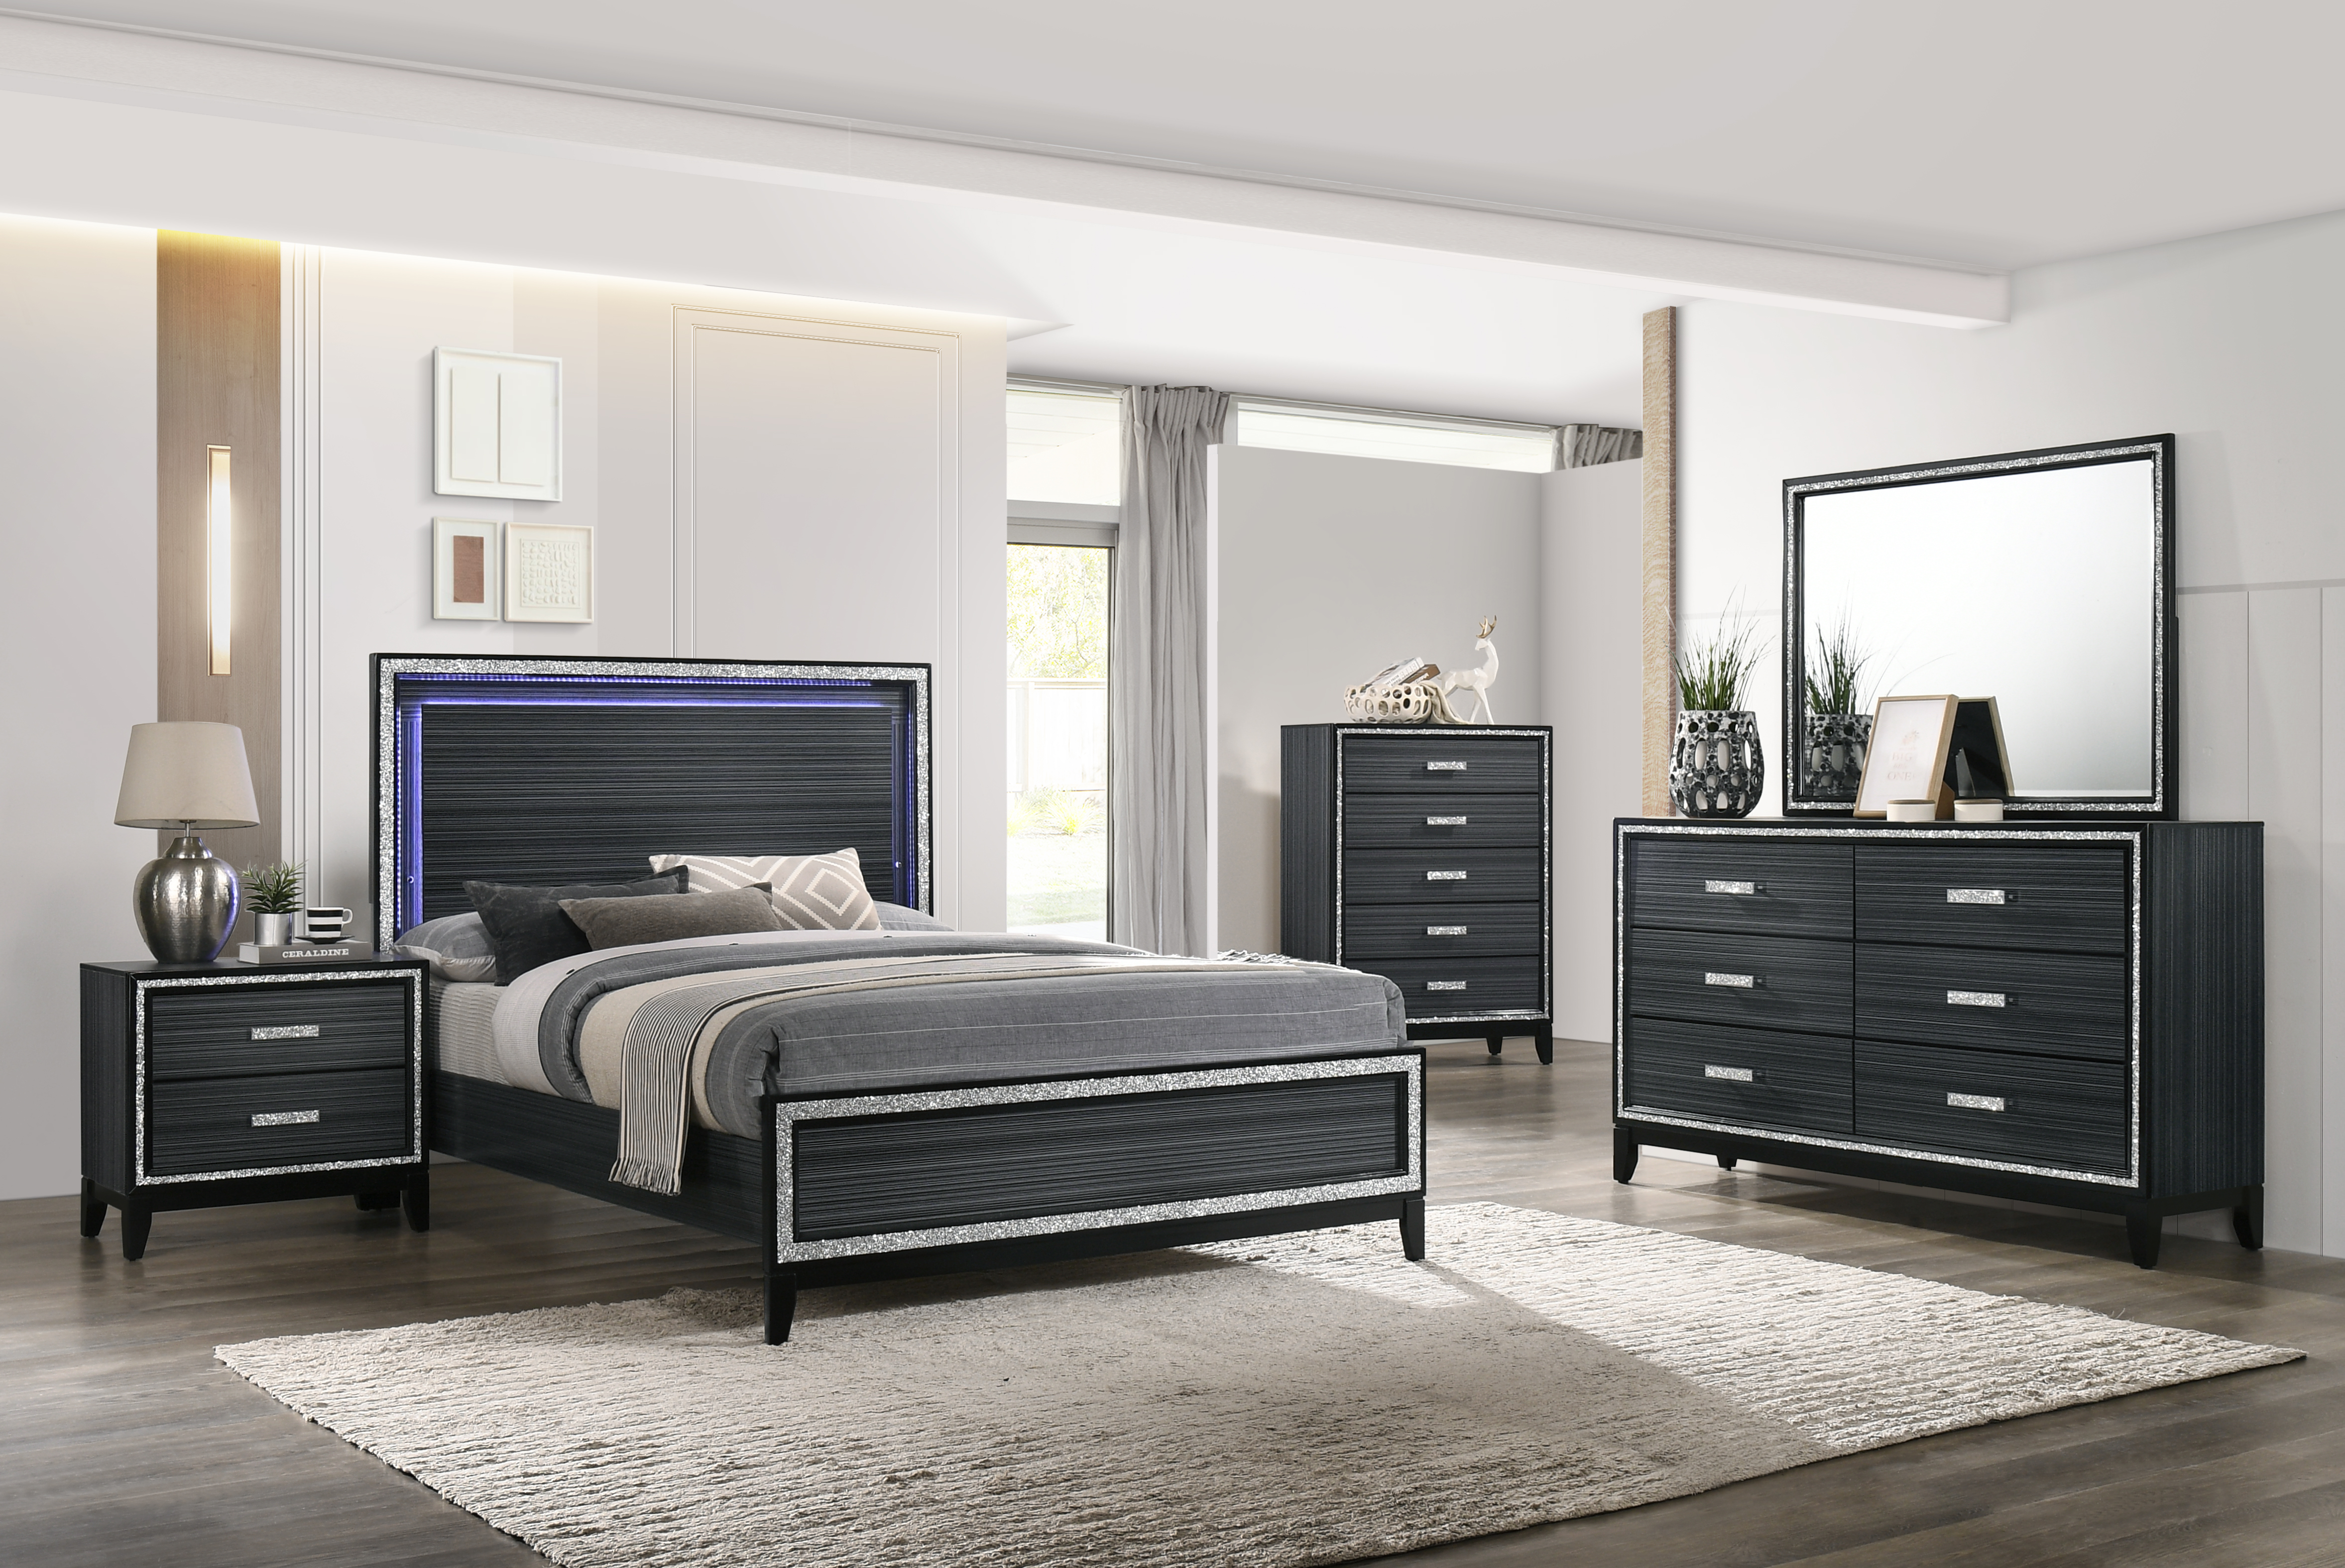 Haiden King Bedroom Group by Acme Furniture at Dream Home Interiors